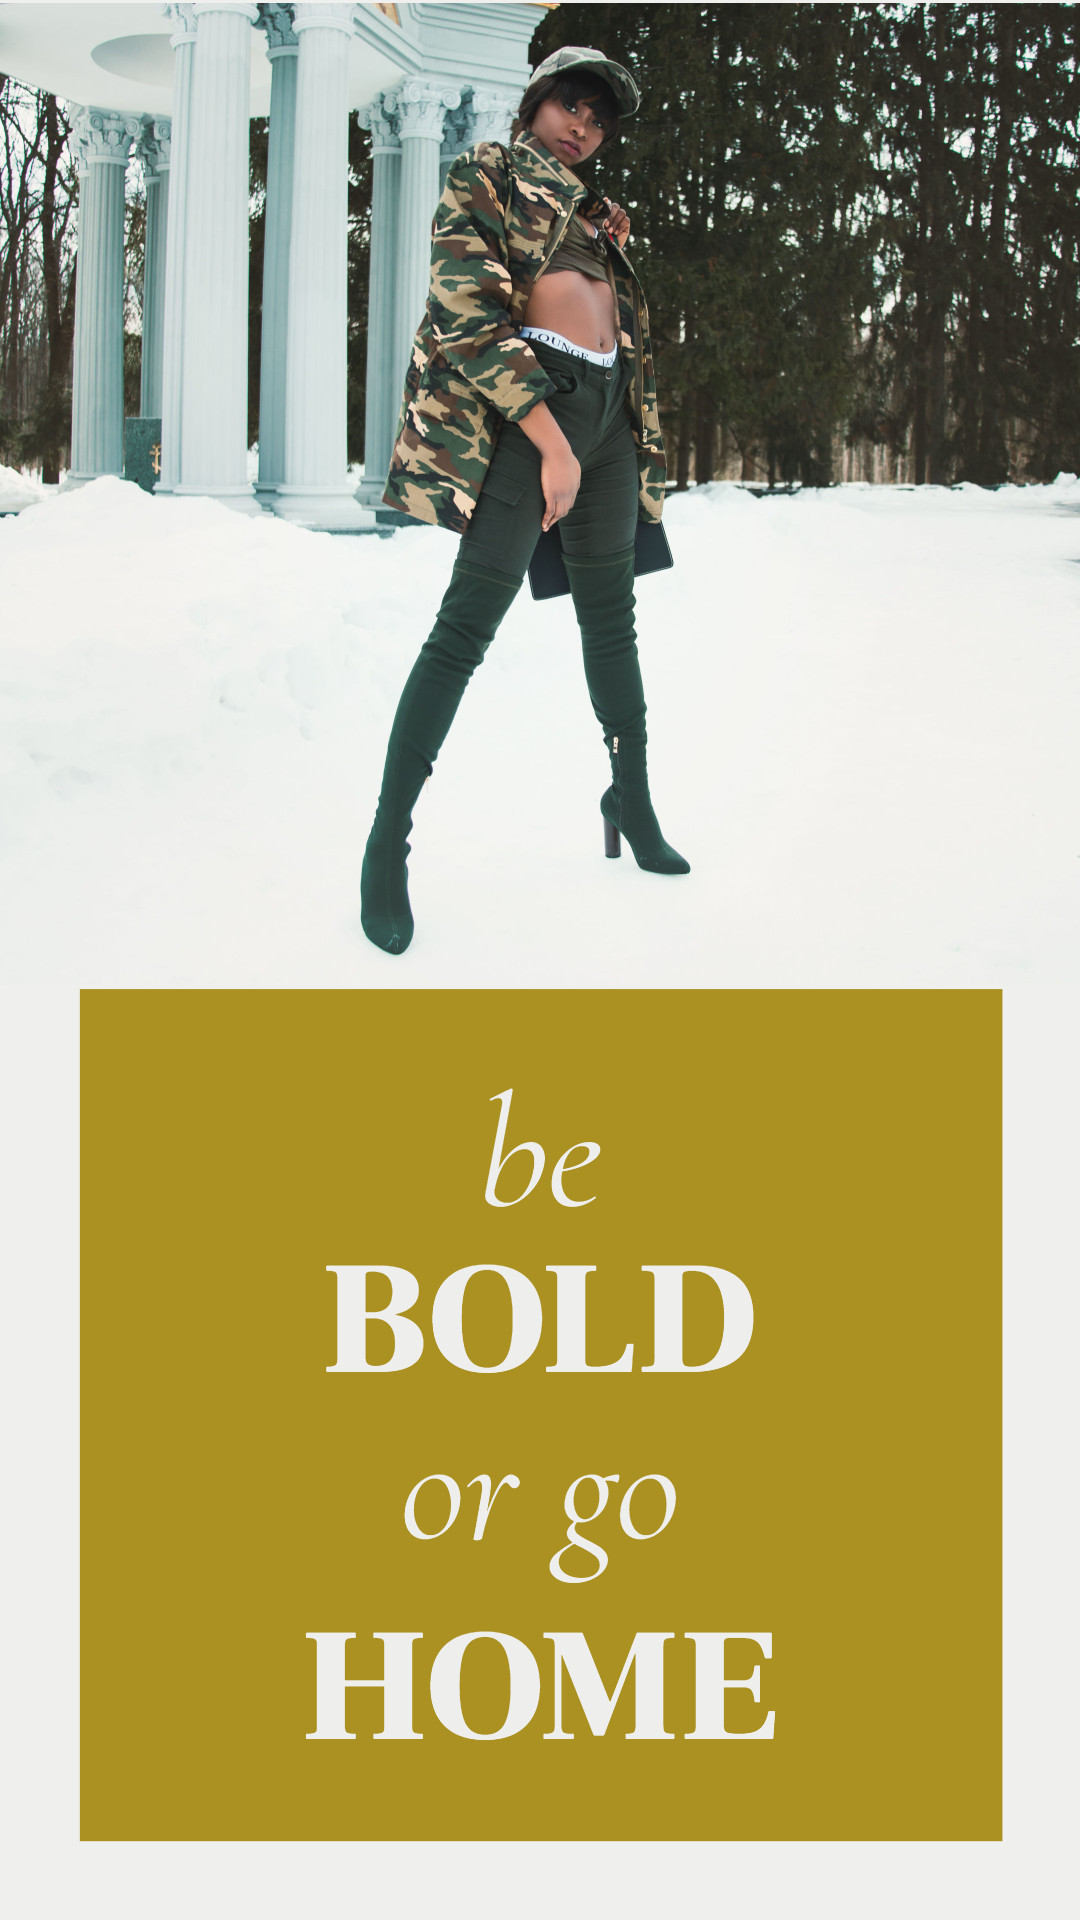 Be bold or go home